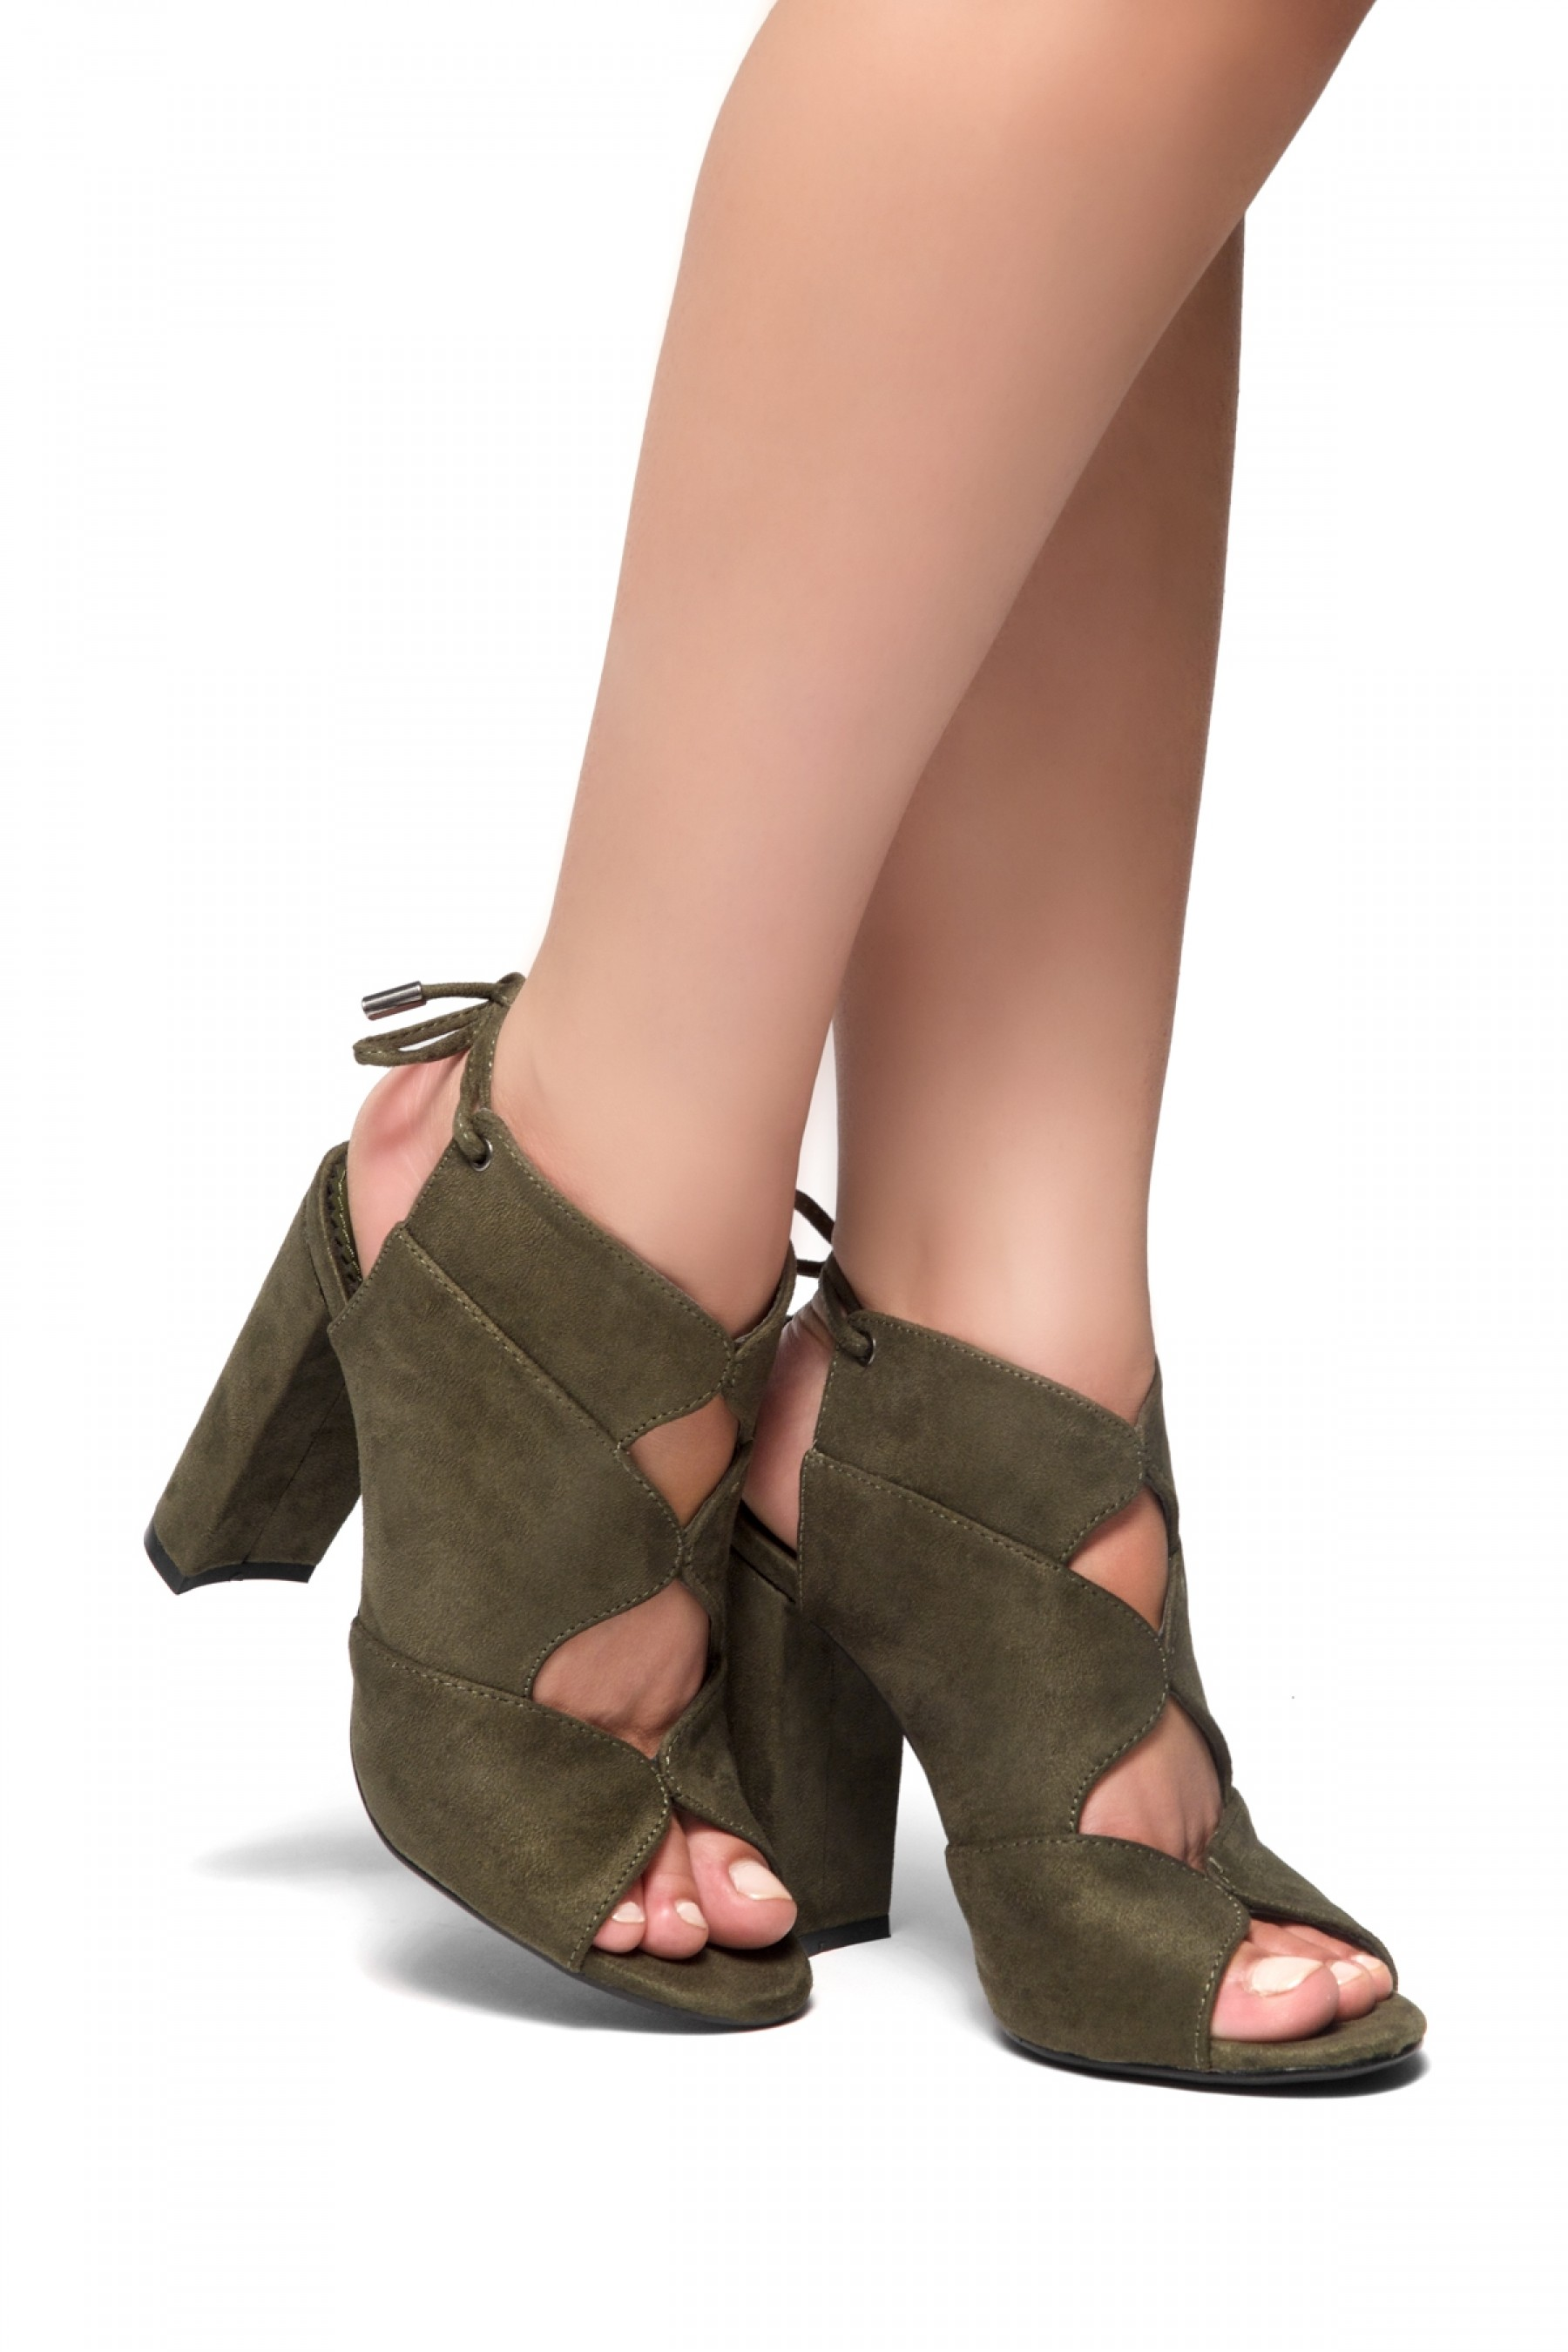 b55d38e1ee4a7 HerStyle Mocha Laser Cut, Chunky Heeled Sandals (Olive)